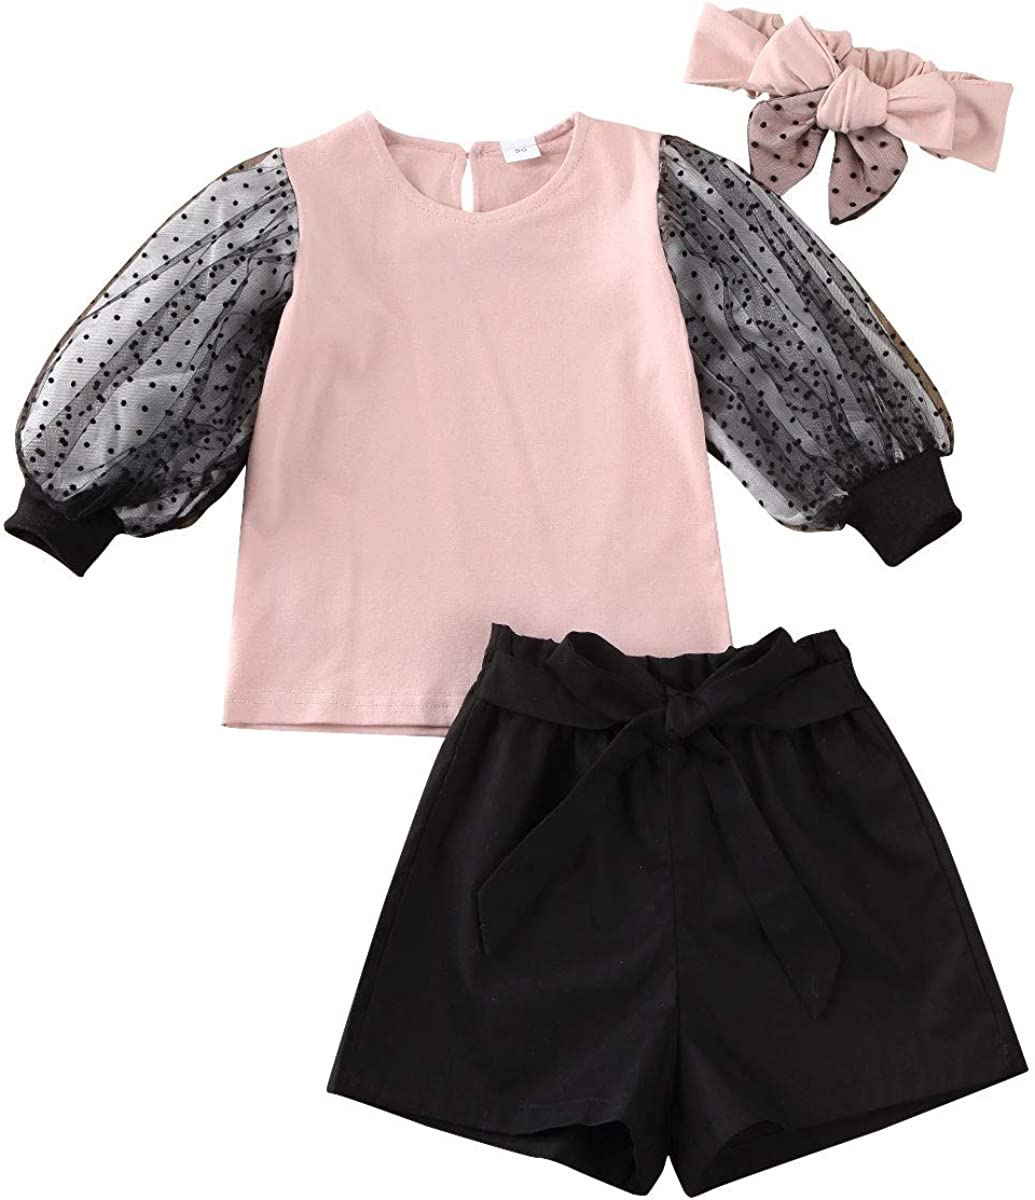 Toddler Baby Girl Max 57% OFF Summer Clothes Sleeve Pink Direct stock discount Lace Top+Waist Long